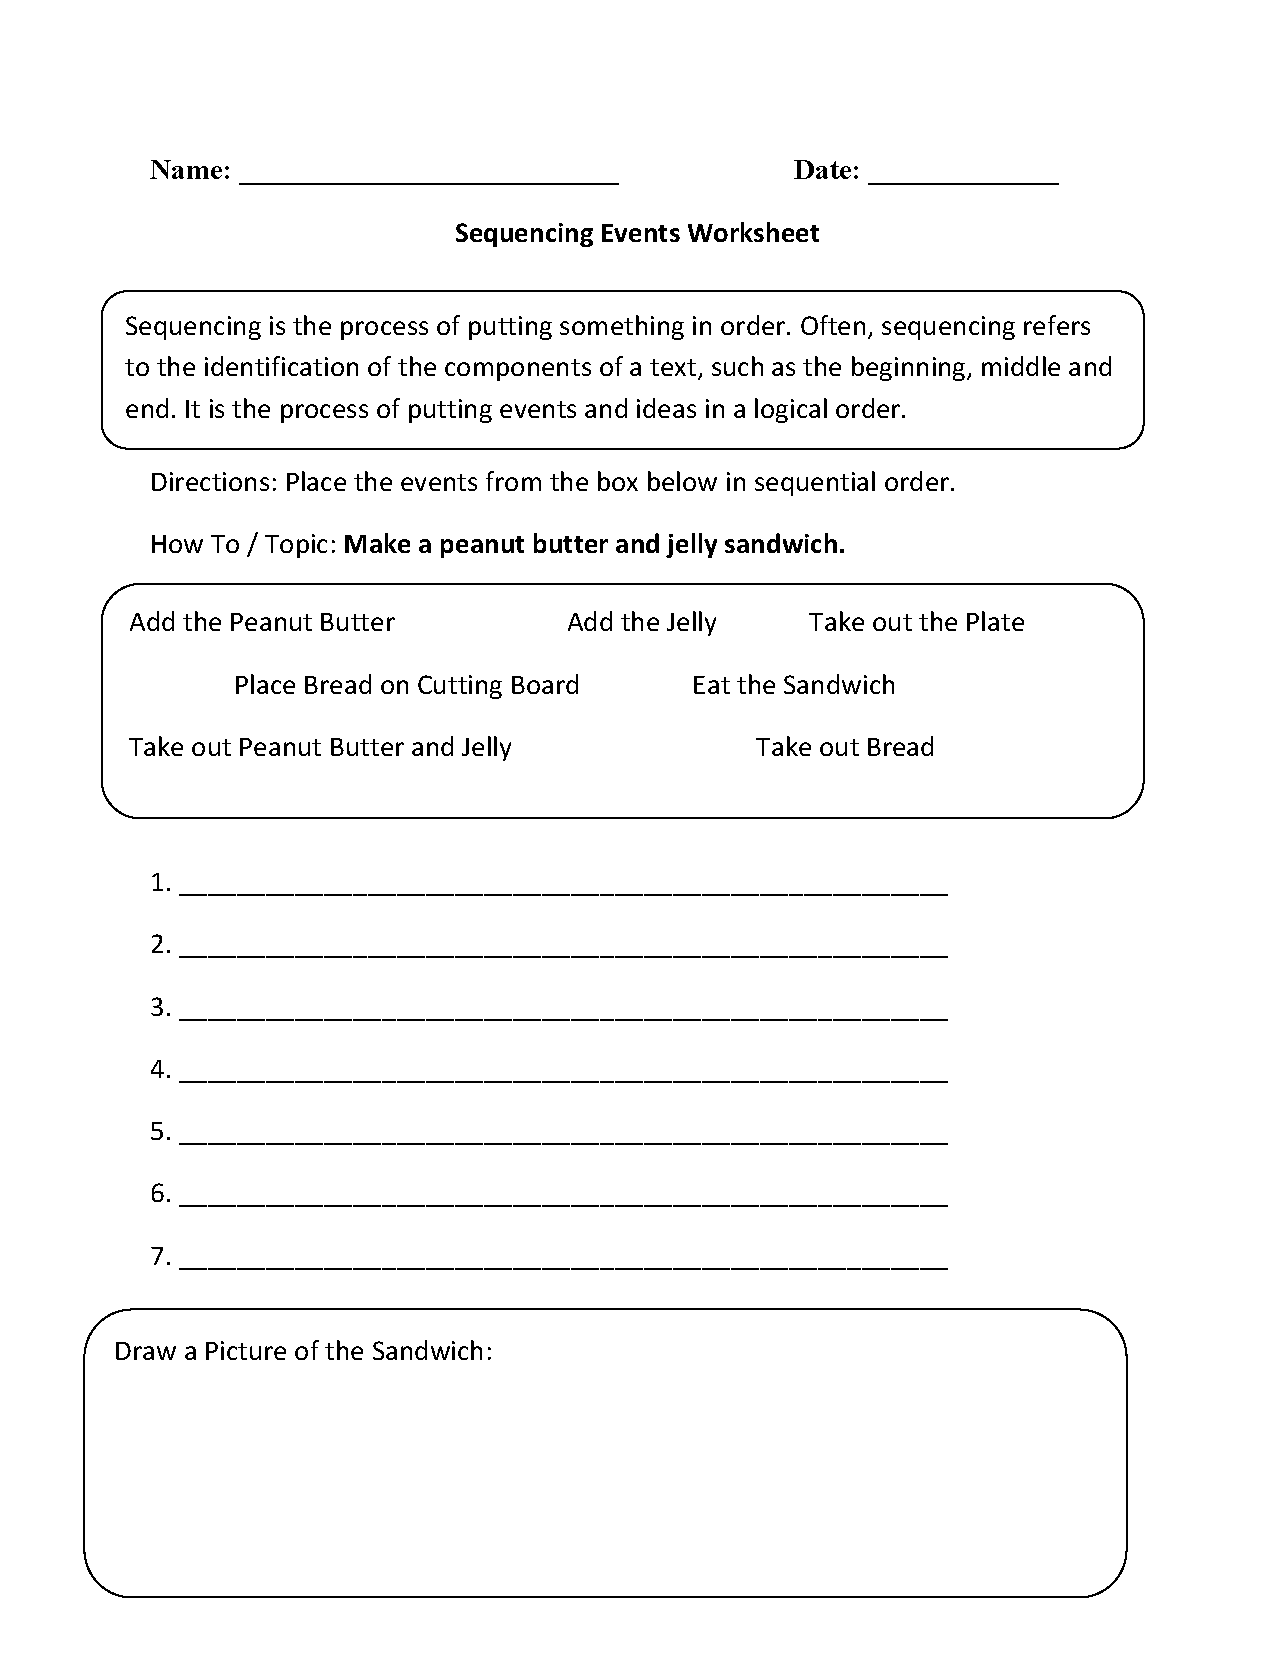 Writing Worksheets Sequencing Worksheets Sequencing Worksheets Sequence Of Events Worksheets Story Sequencing Worksheets [ 1662 x 1275 Pixel ]